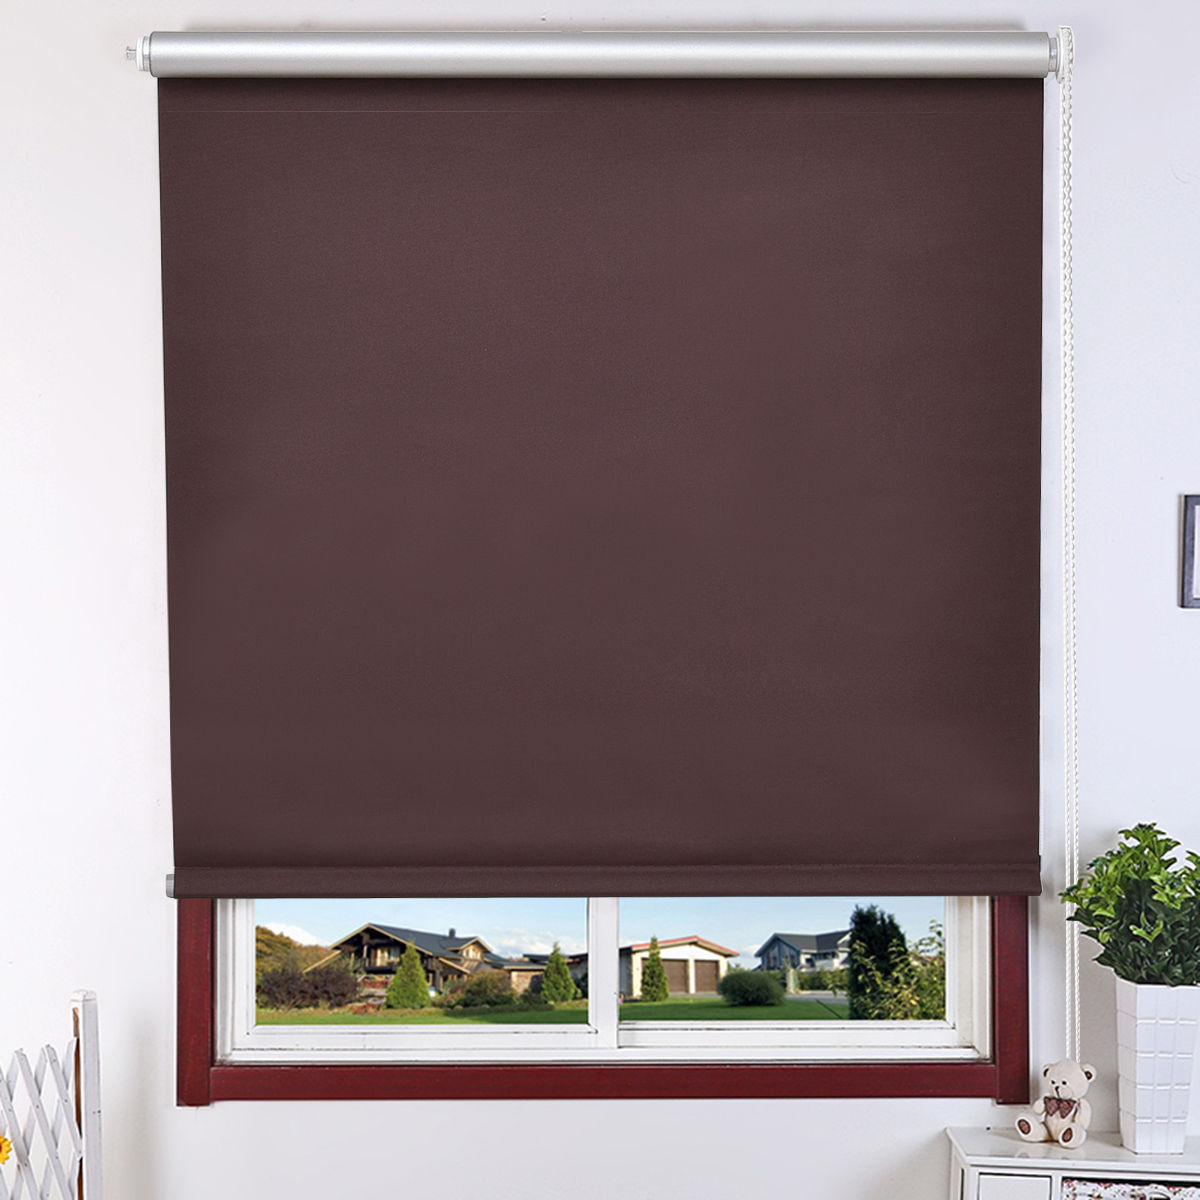 Goplus 22''x60'' Roller Full Blinds Sunscreen Blackout Sun Shade Curtain Window 4 Color